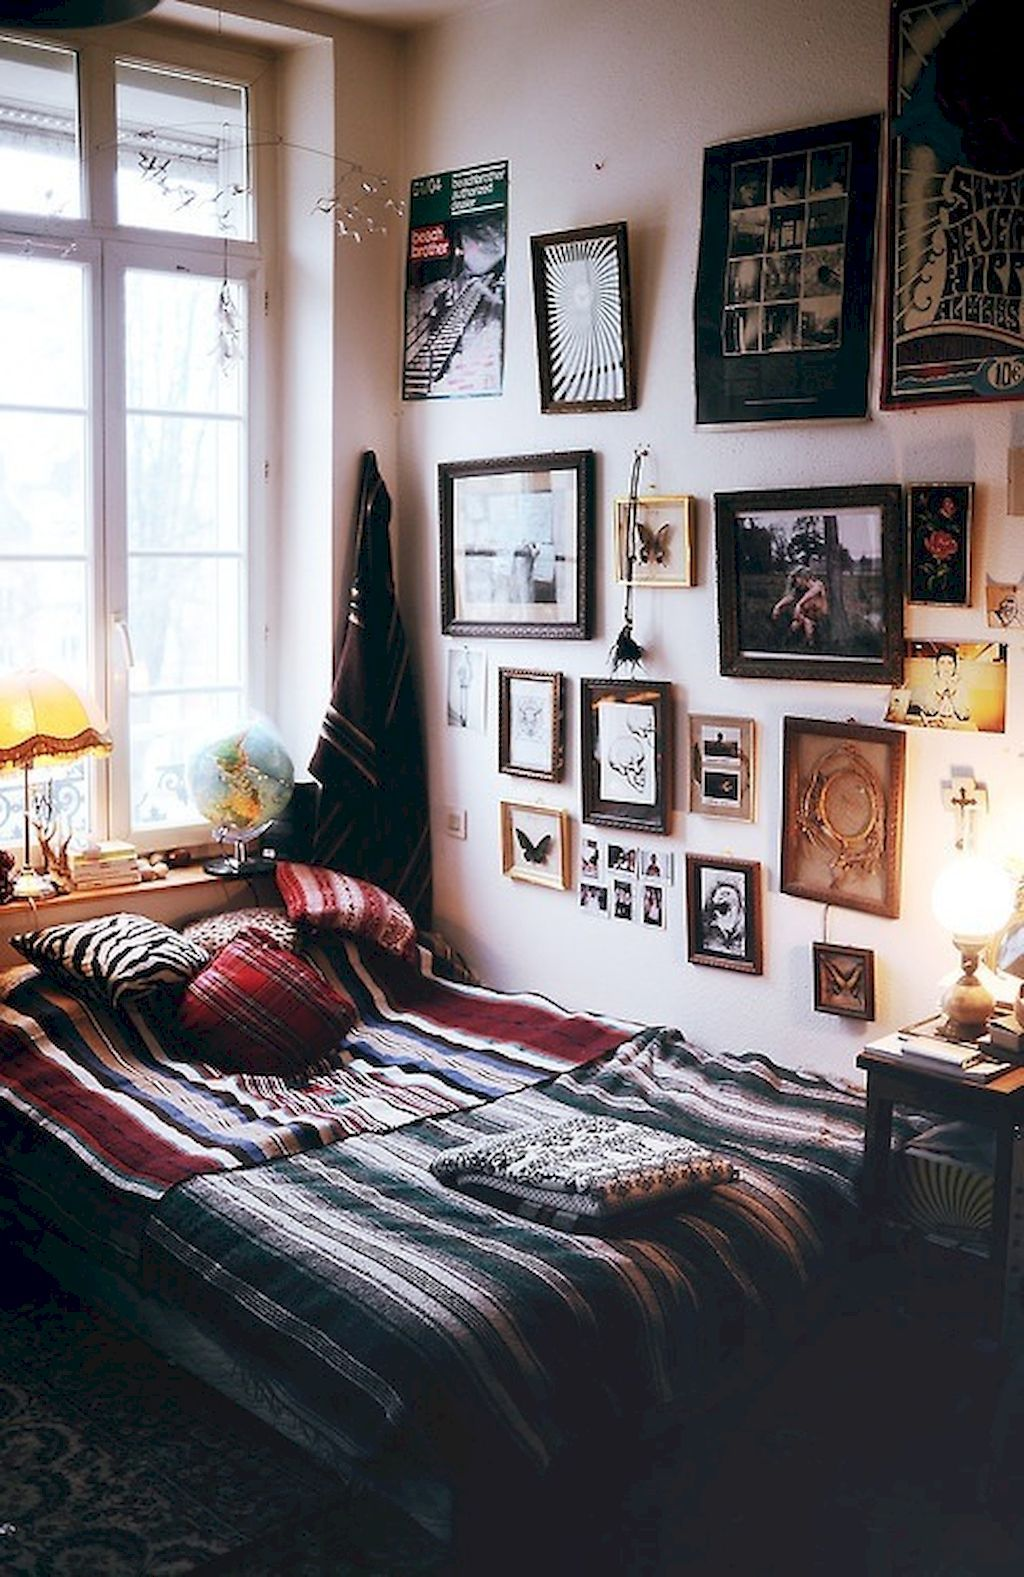 66 Cute DIY Hipster Bedroom Decorations Ideas | Bedrooms, Decoration ...